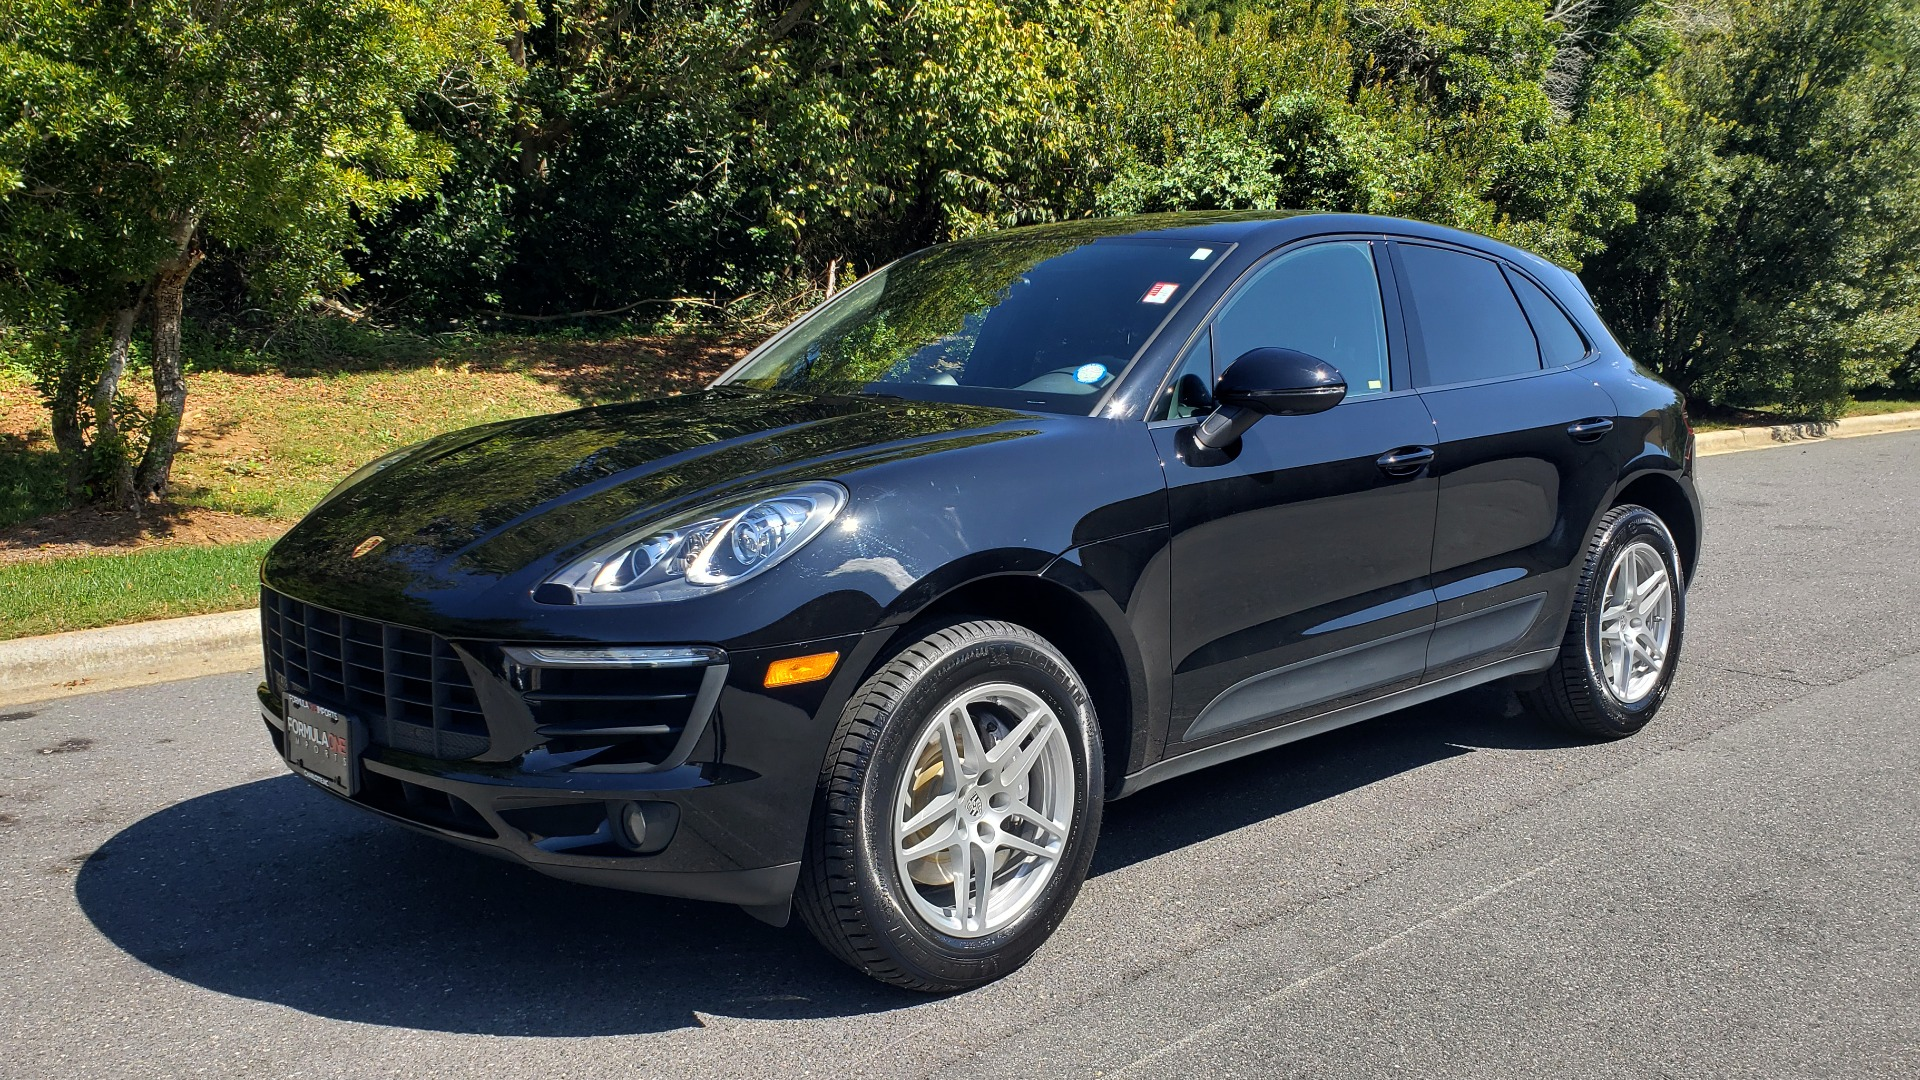 Used 2018 Porsche MACAN PREMIUM PKG PLUS / NAV / PDK / BOSE / REARVIEW for sale Sold at Formula Imports in Charlotte NC 28227 2